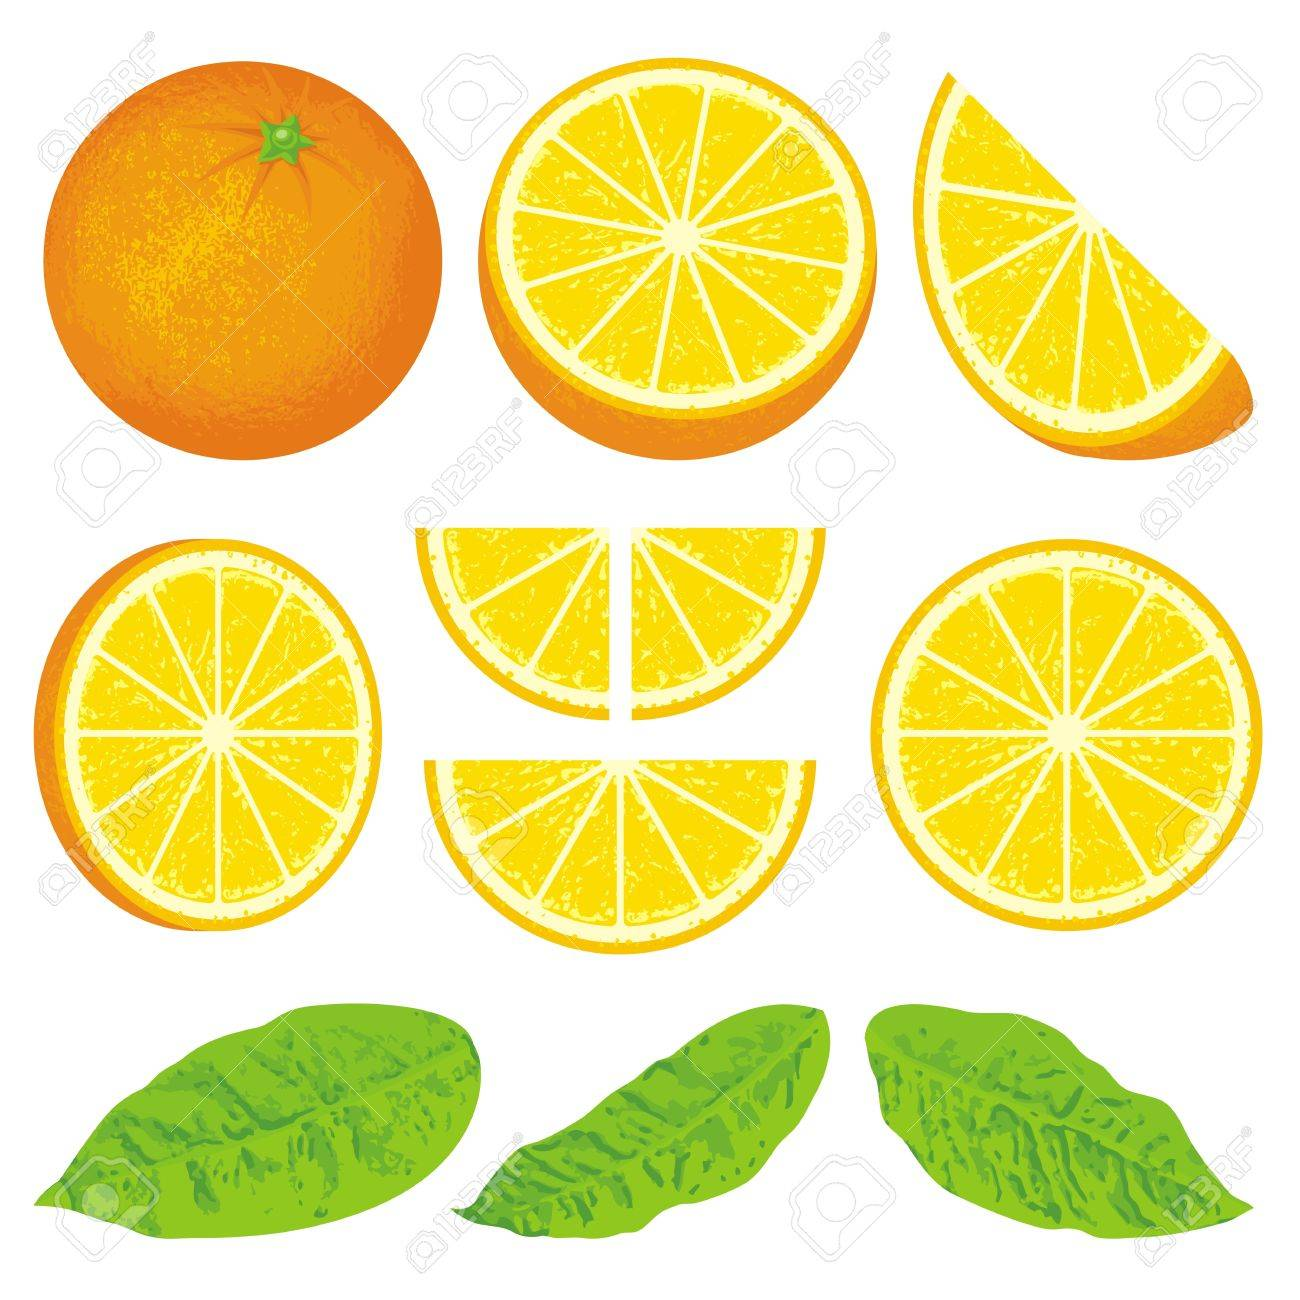 Orange and slices at different angles, also three versions of leafs all with grunge shading. - 10411676